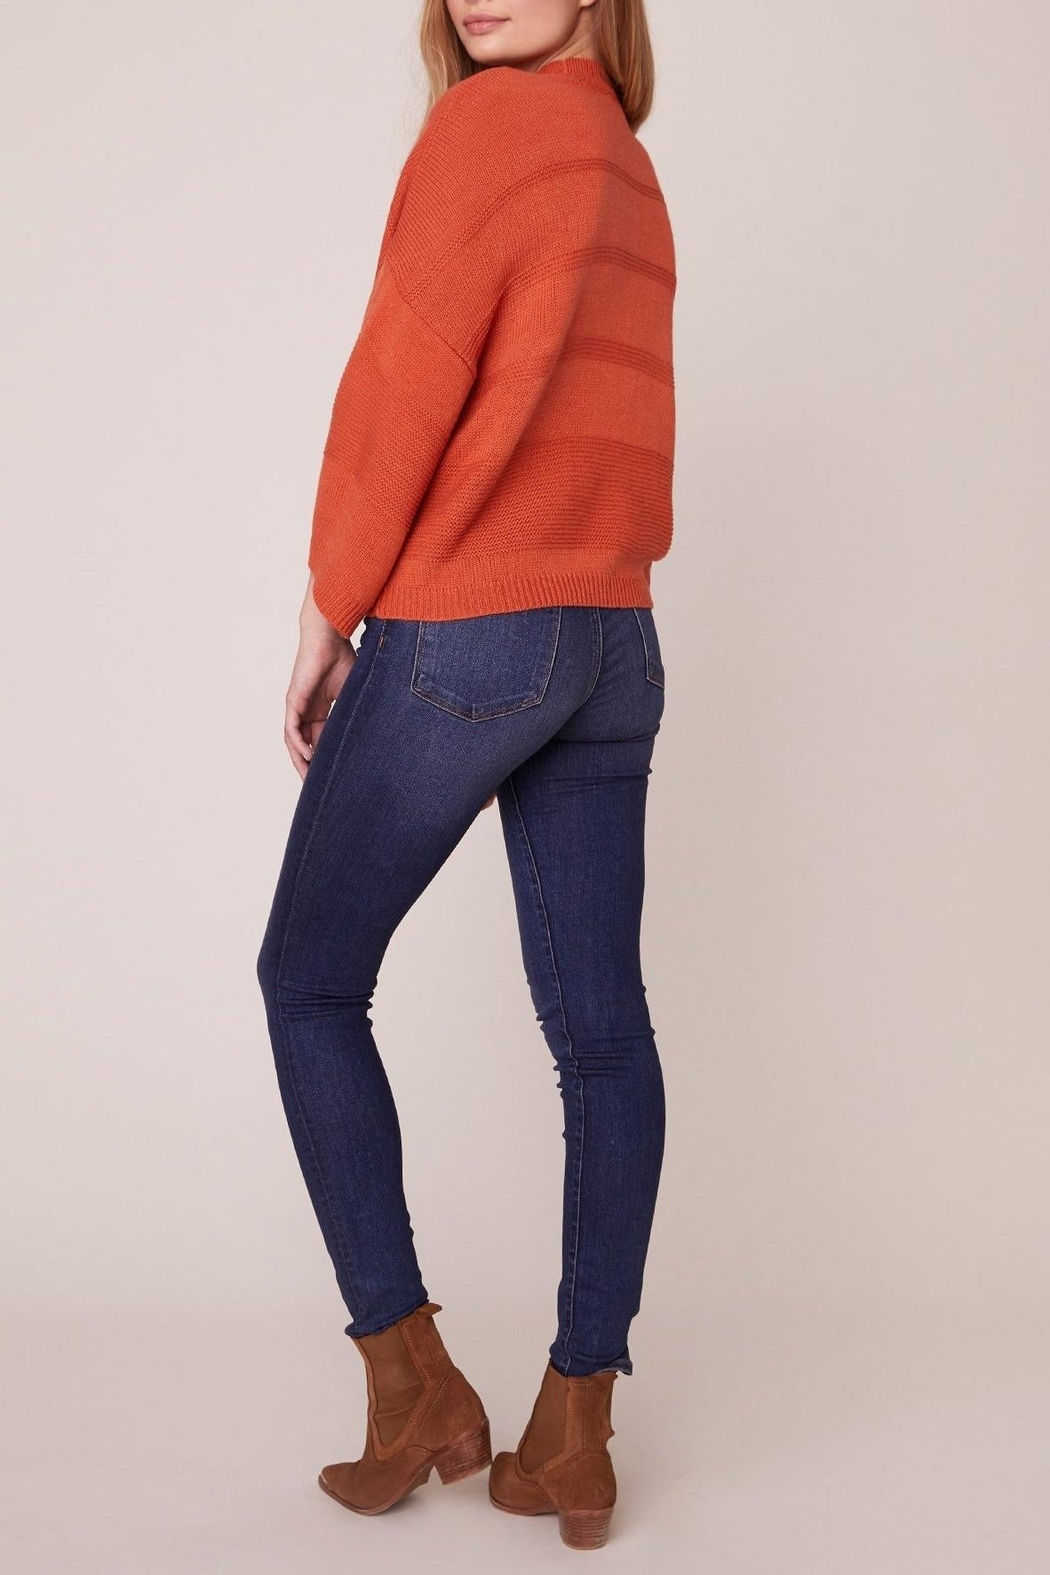 Jack by BB Dakota Orange Boxy 3/4 Sleeve Sweater - Front Full Image